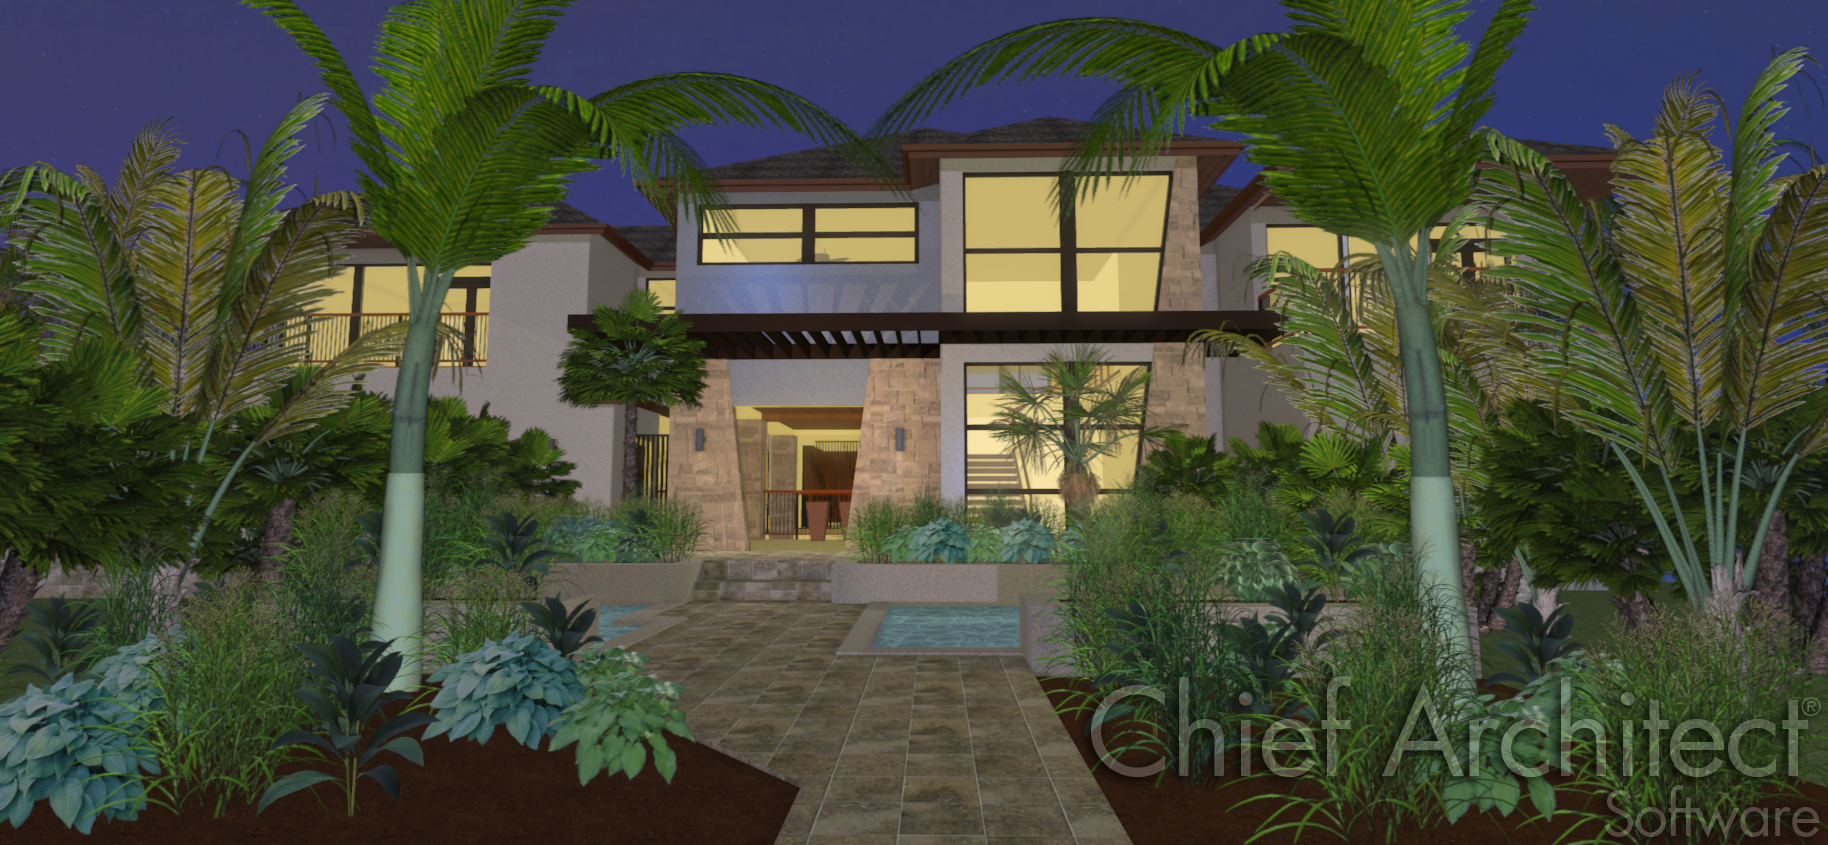 Chief Architect Home Designer Essentials 2016 Software Computer Software Multimedia Software